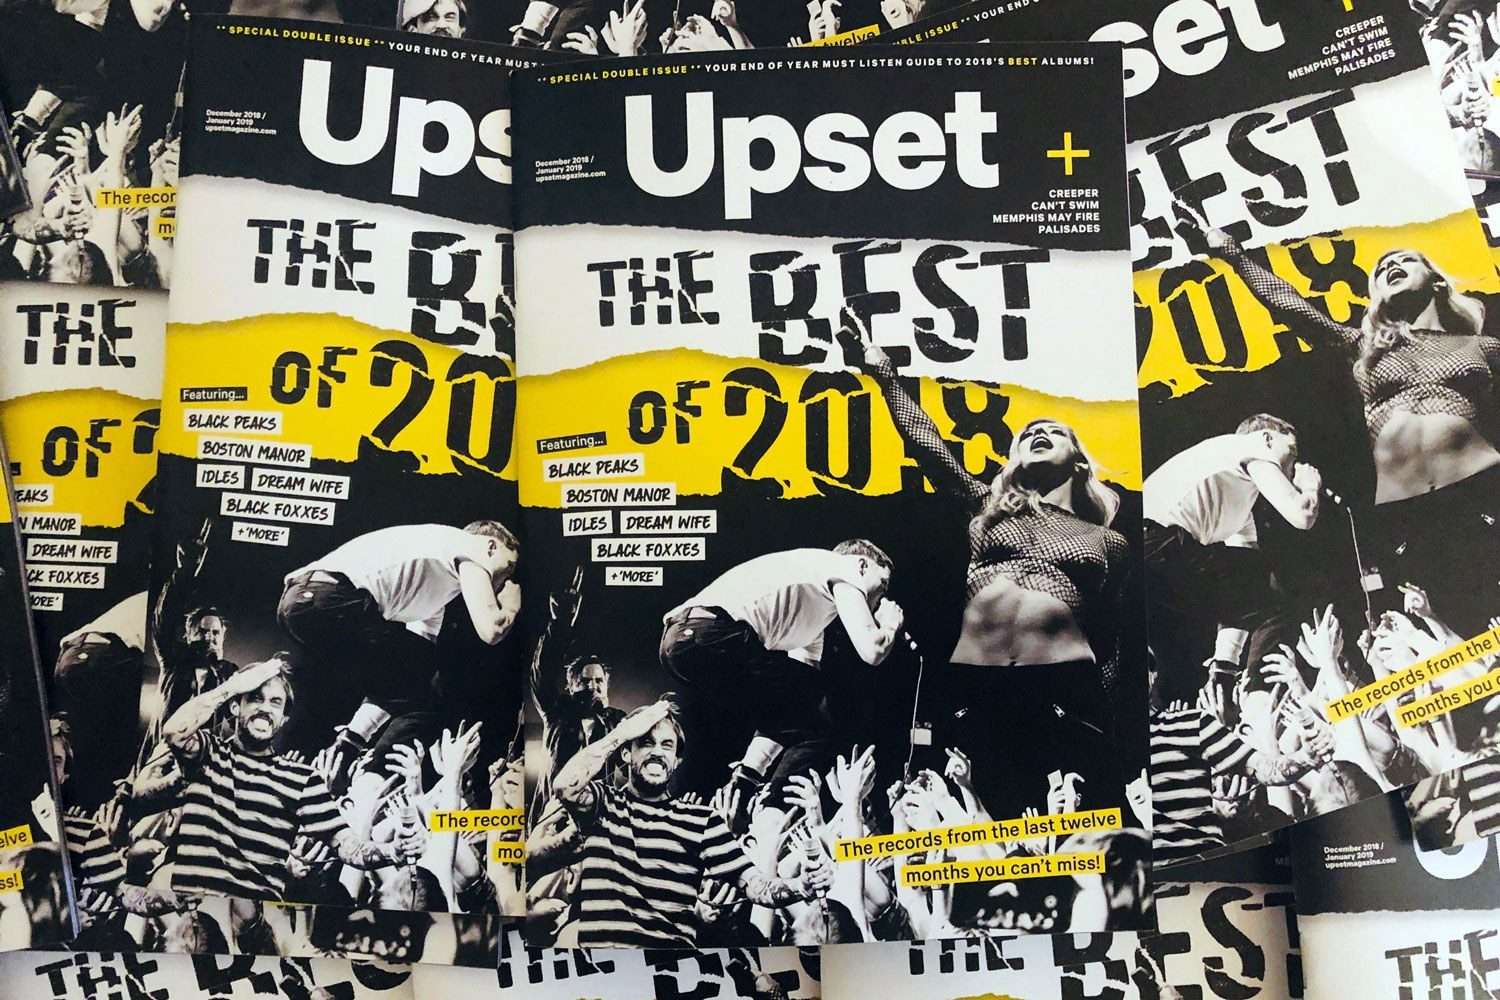 The new issue of Upset, featuring the best of 2018, is out now